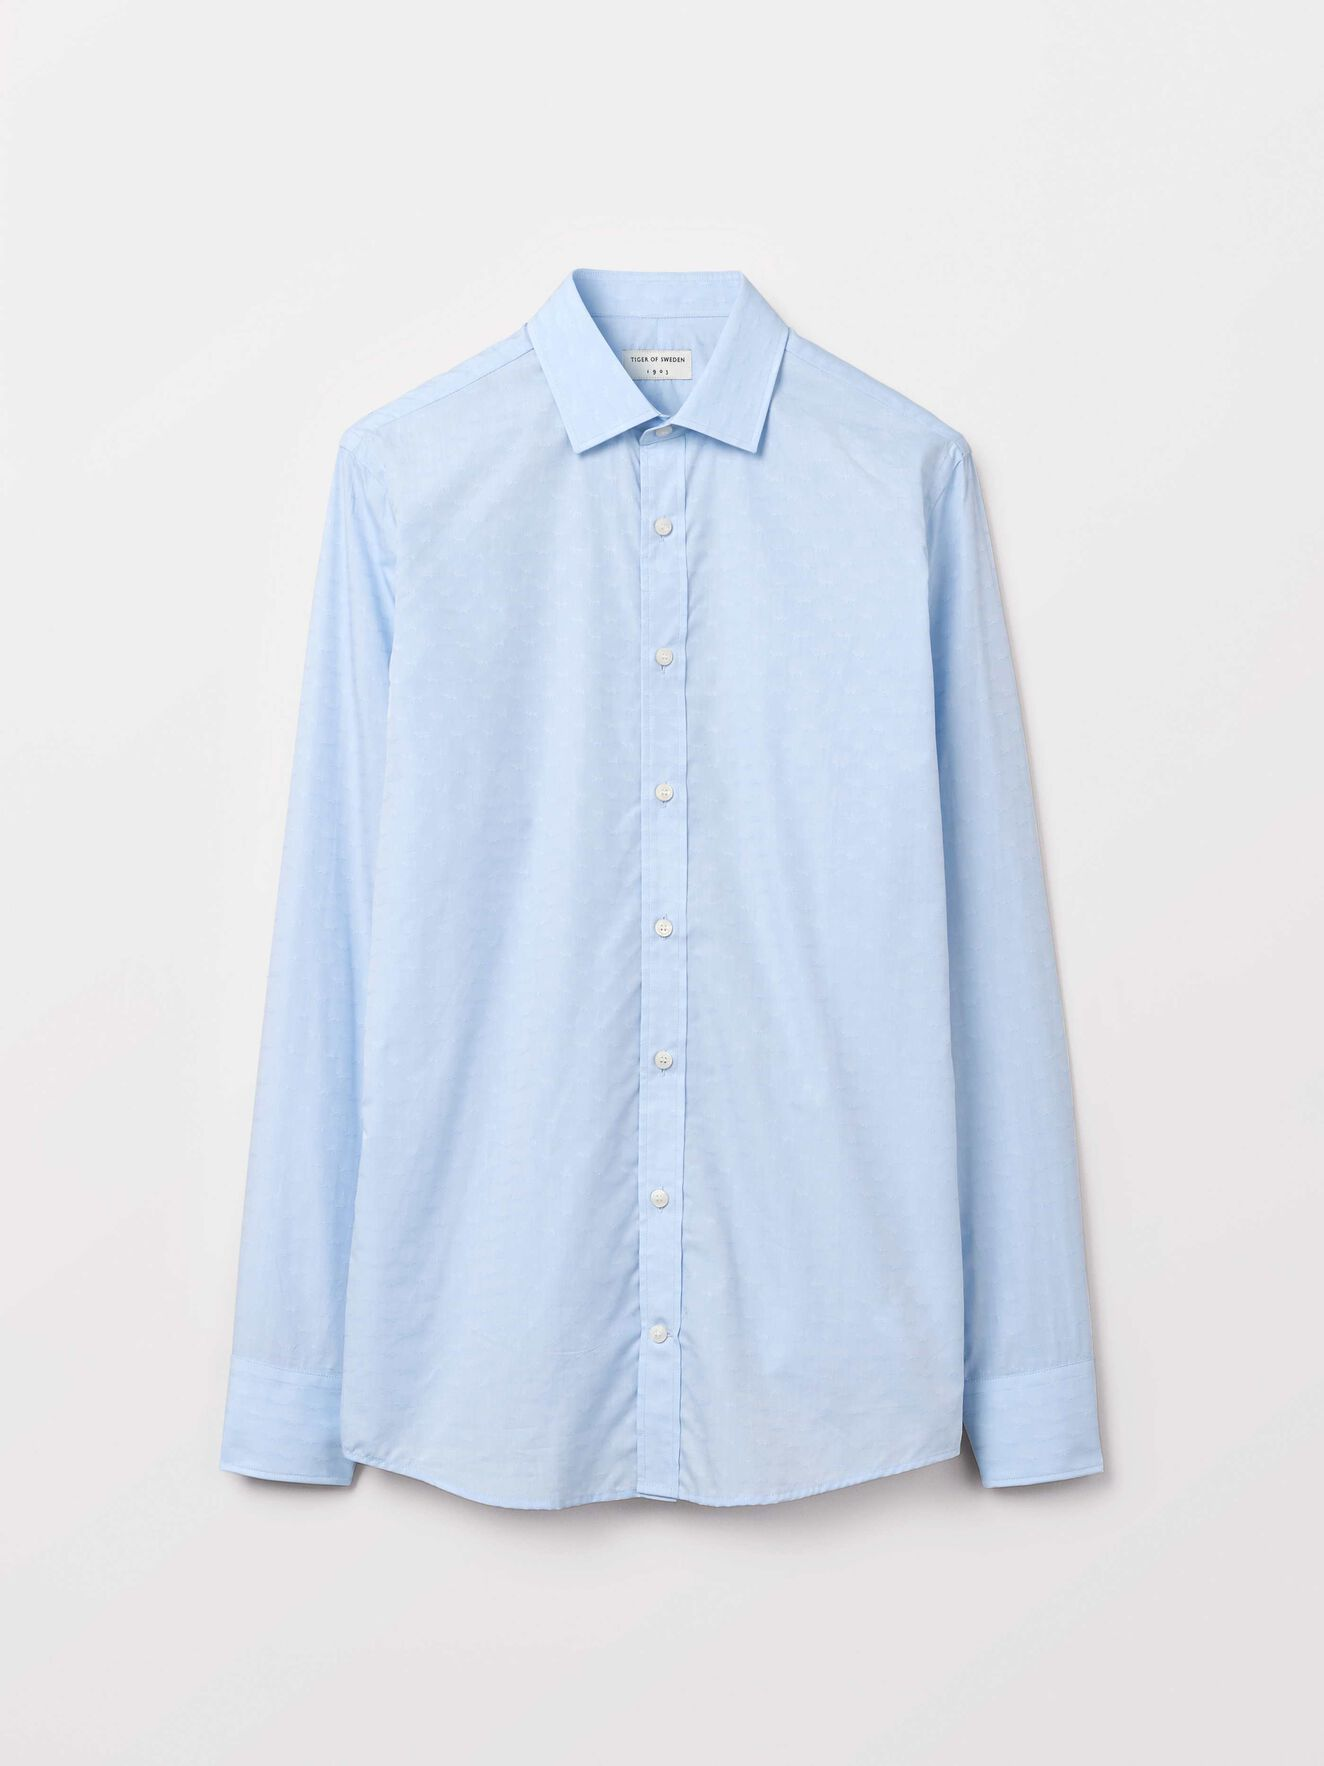 Fridolf Shirt in Airy Blue from Tiger of Sweden